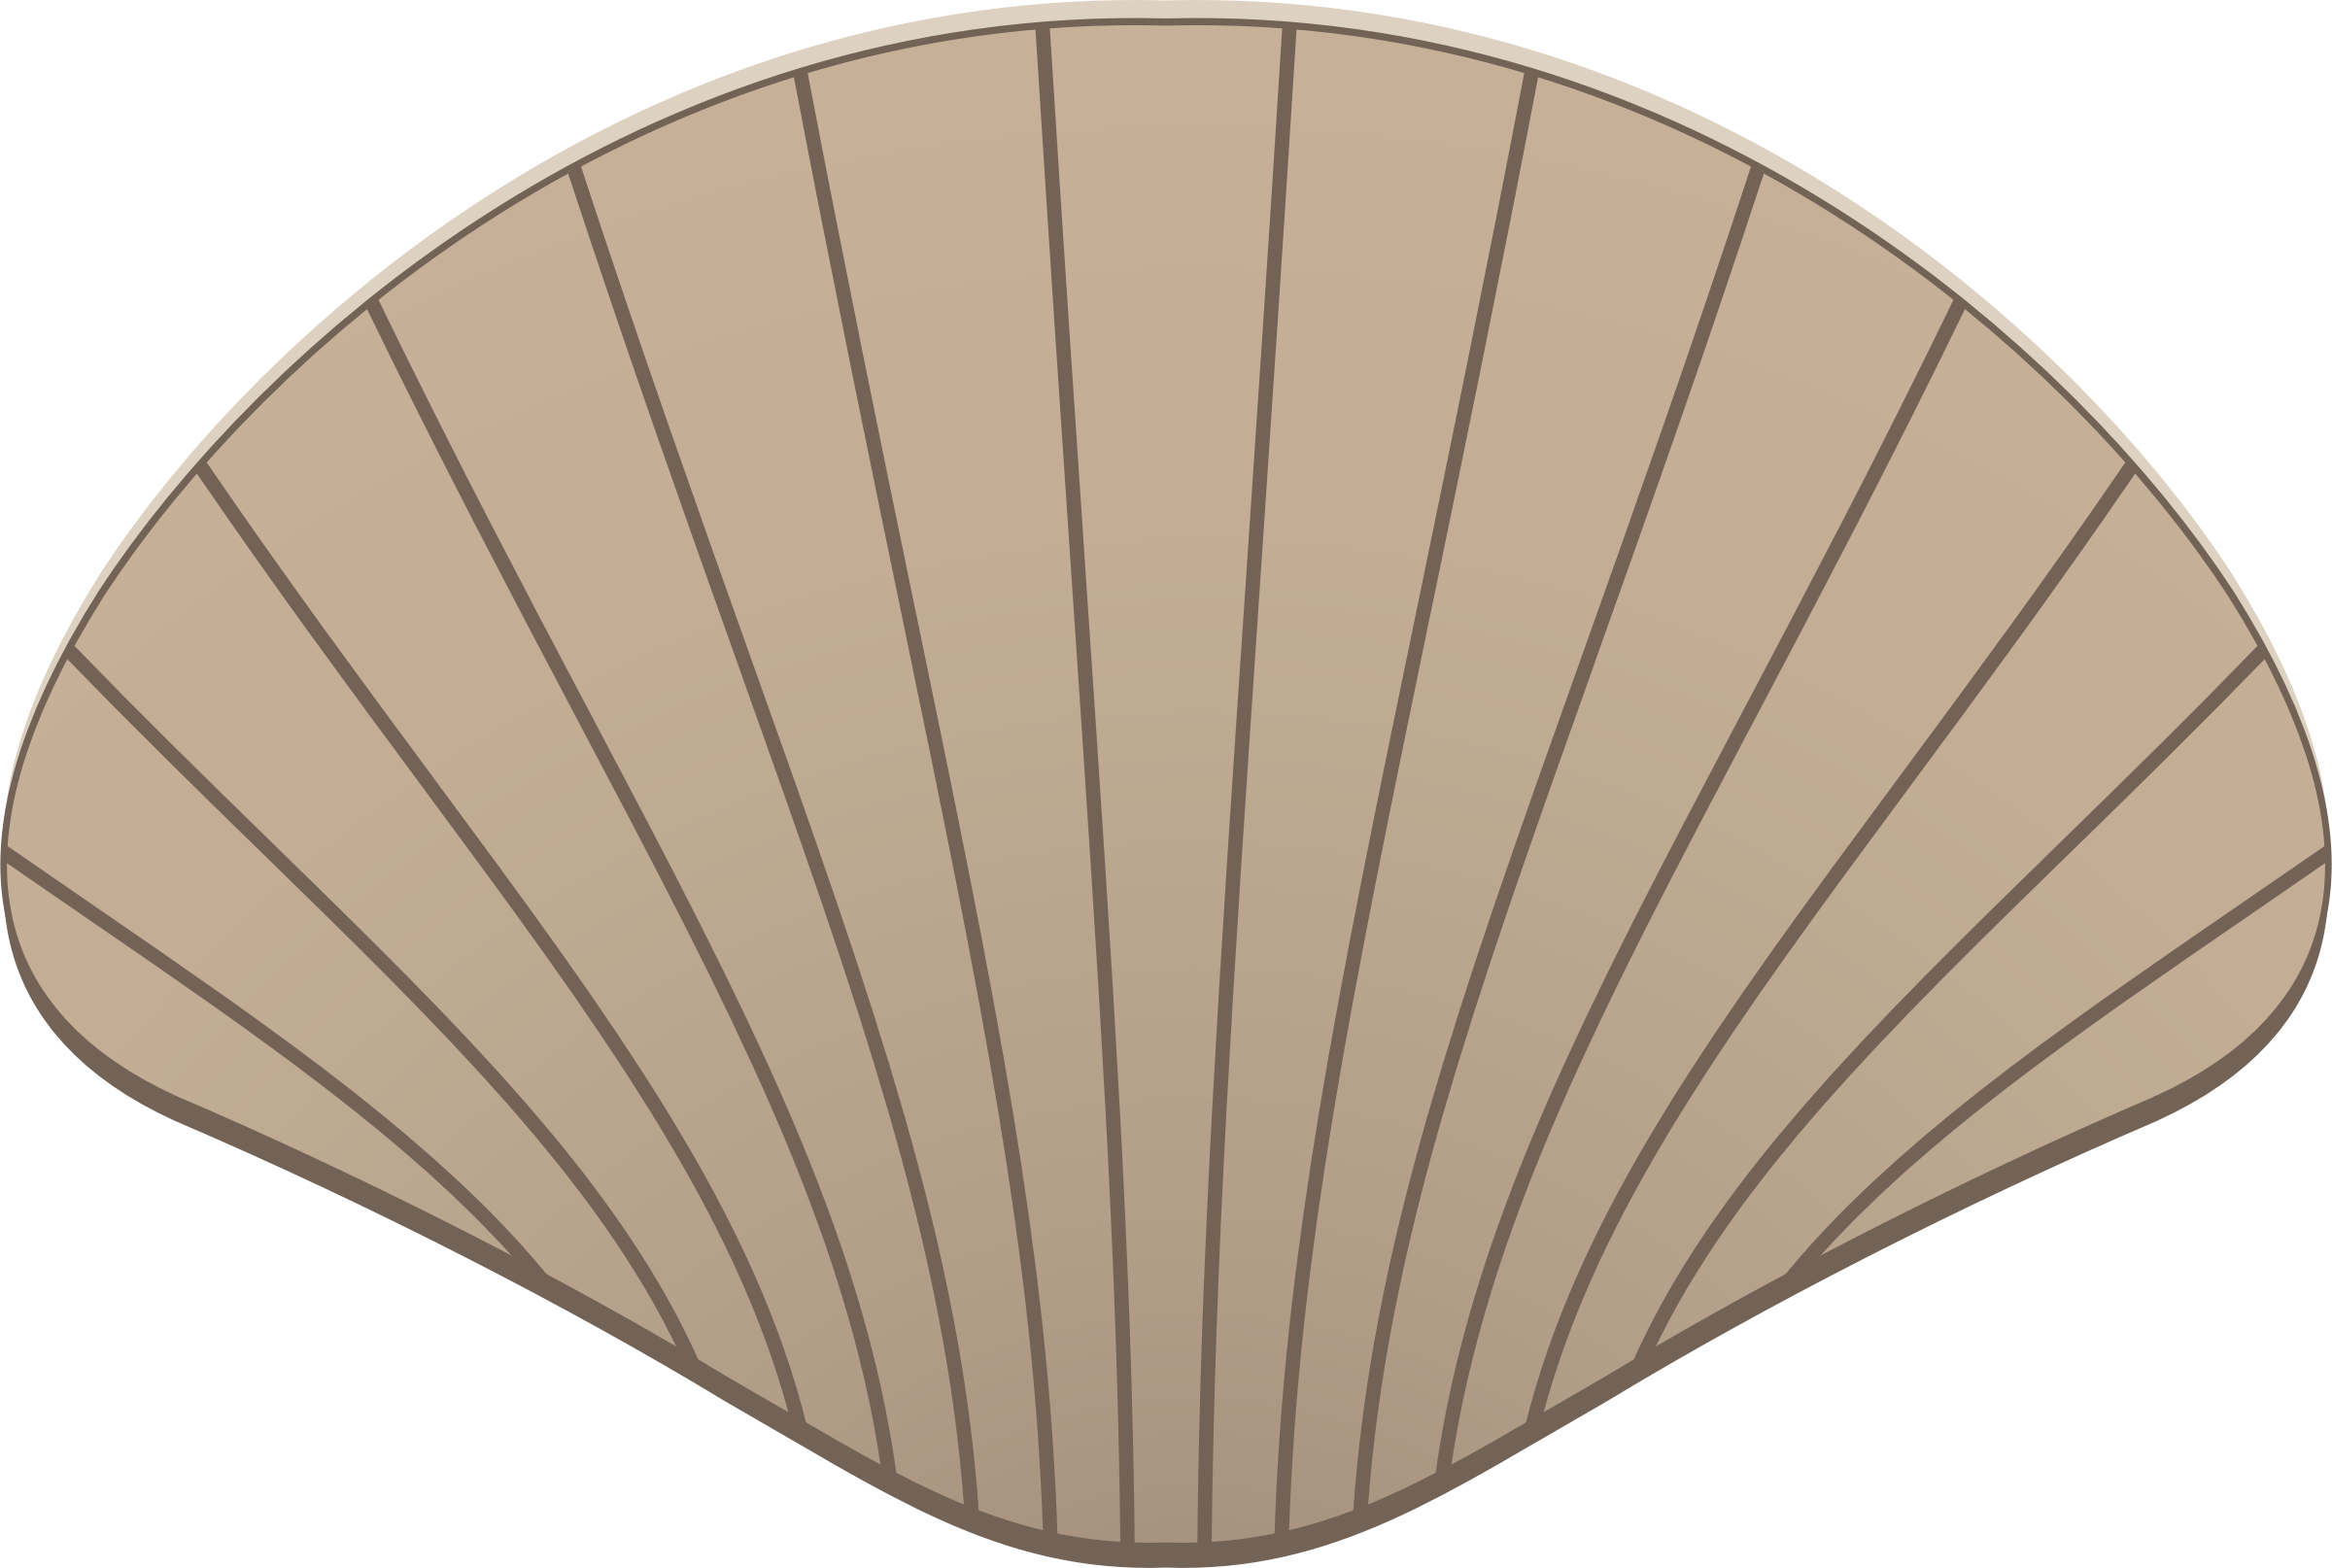 Shell clipart shell scallop. Big image png